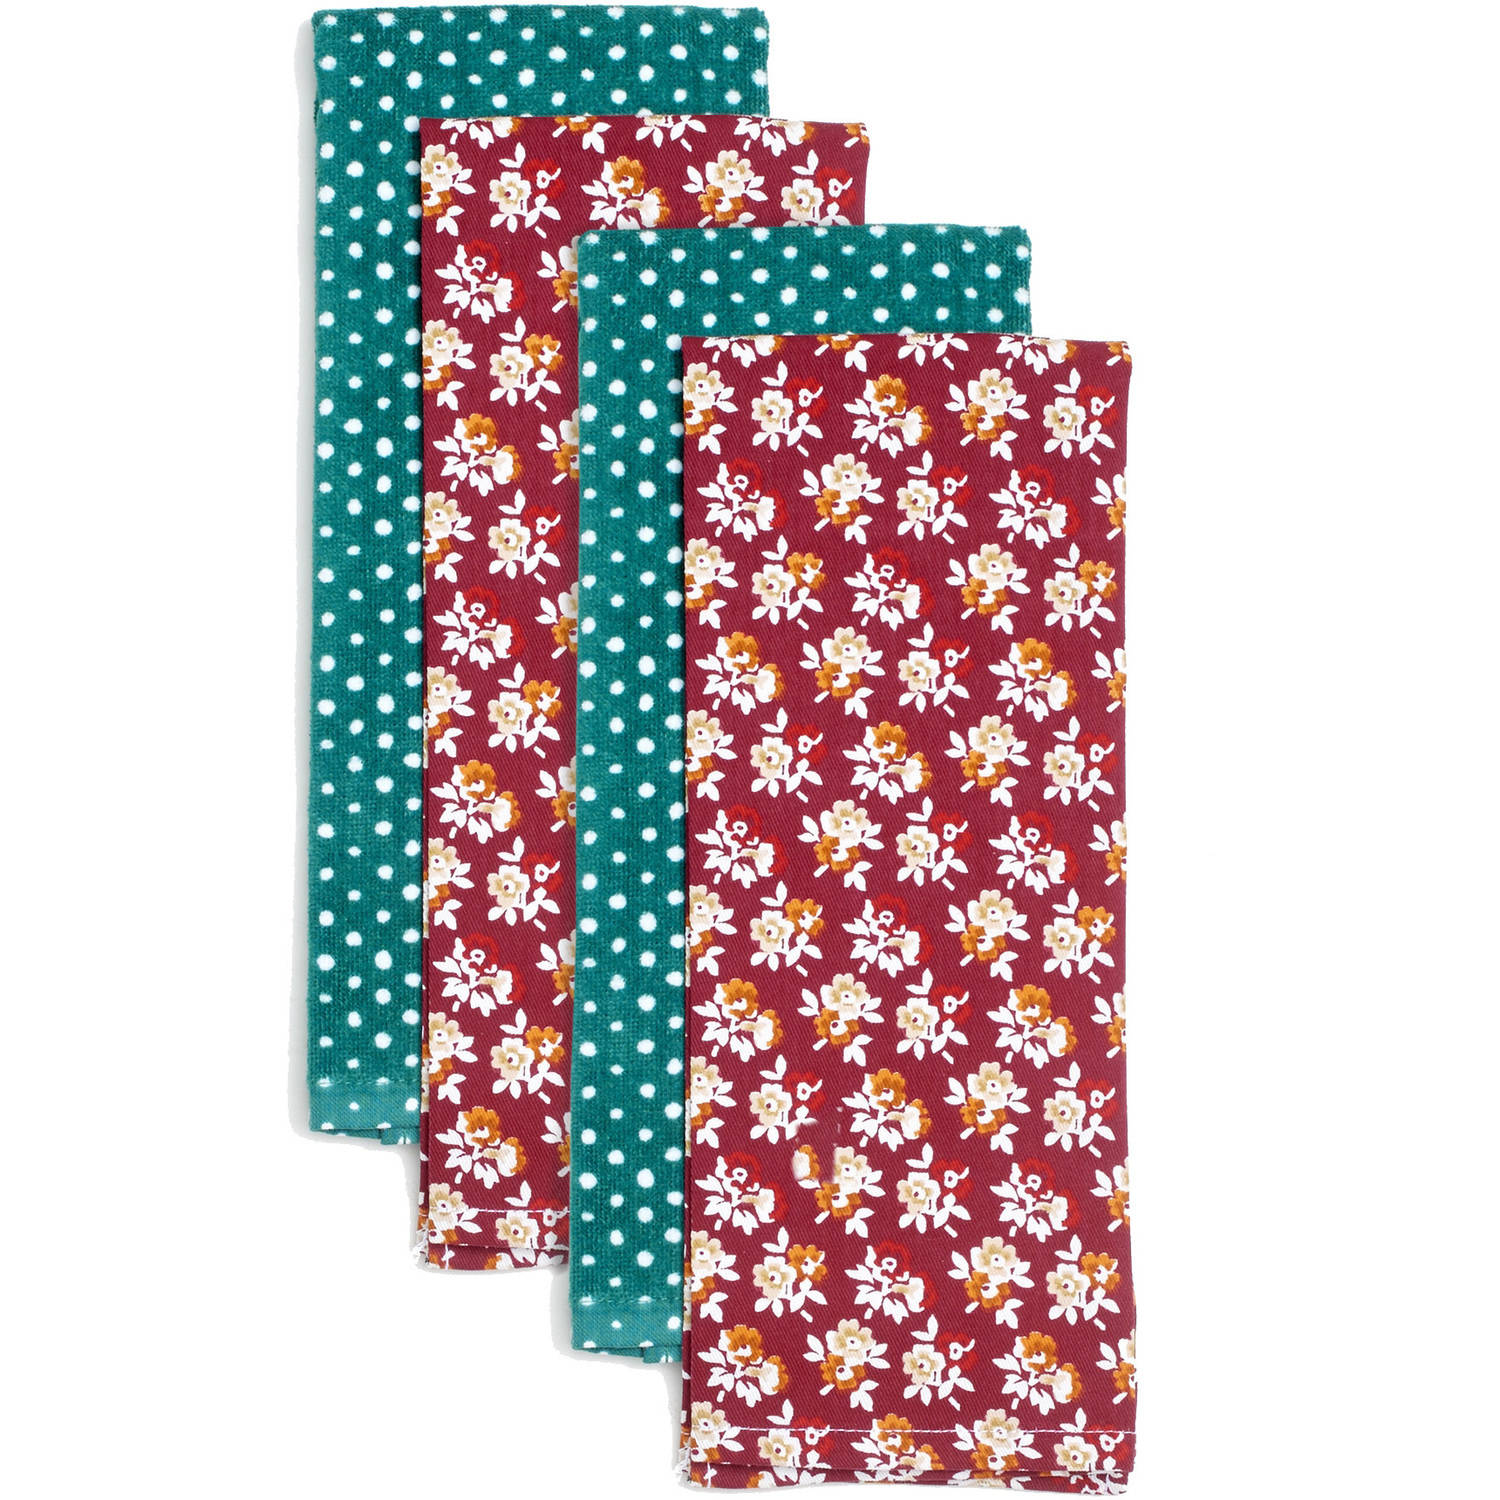 Pioneer Woman Fall Flowers Kitchen Towels, Set Of 4